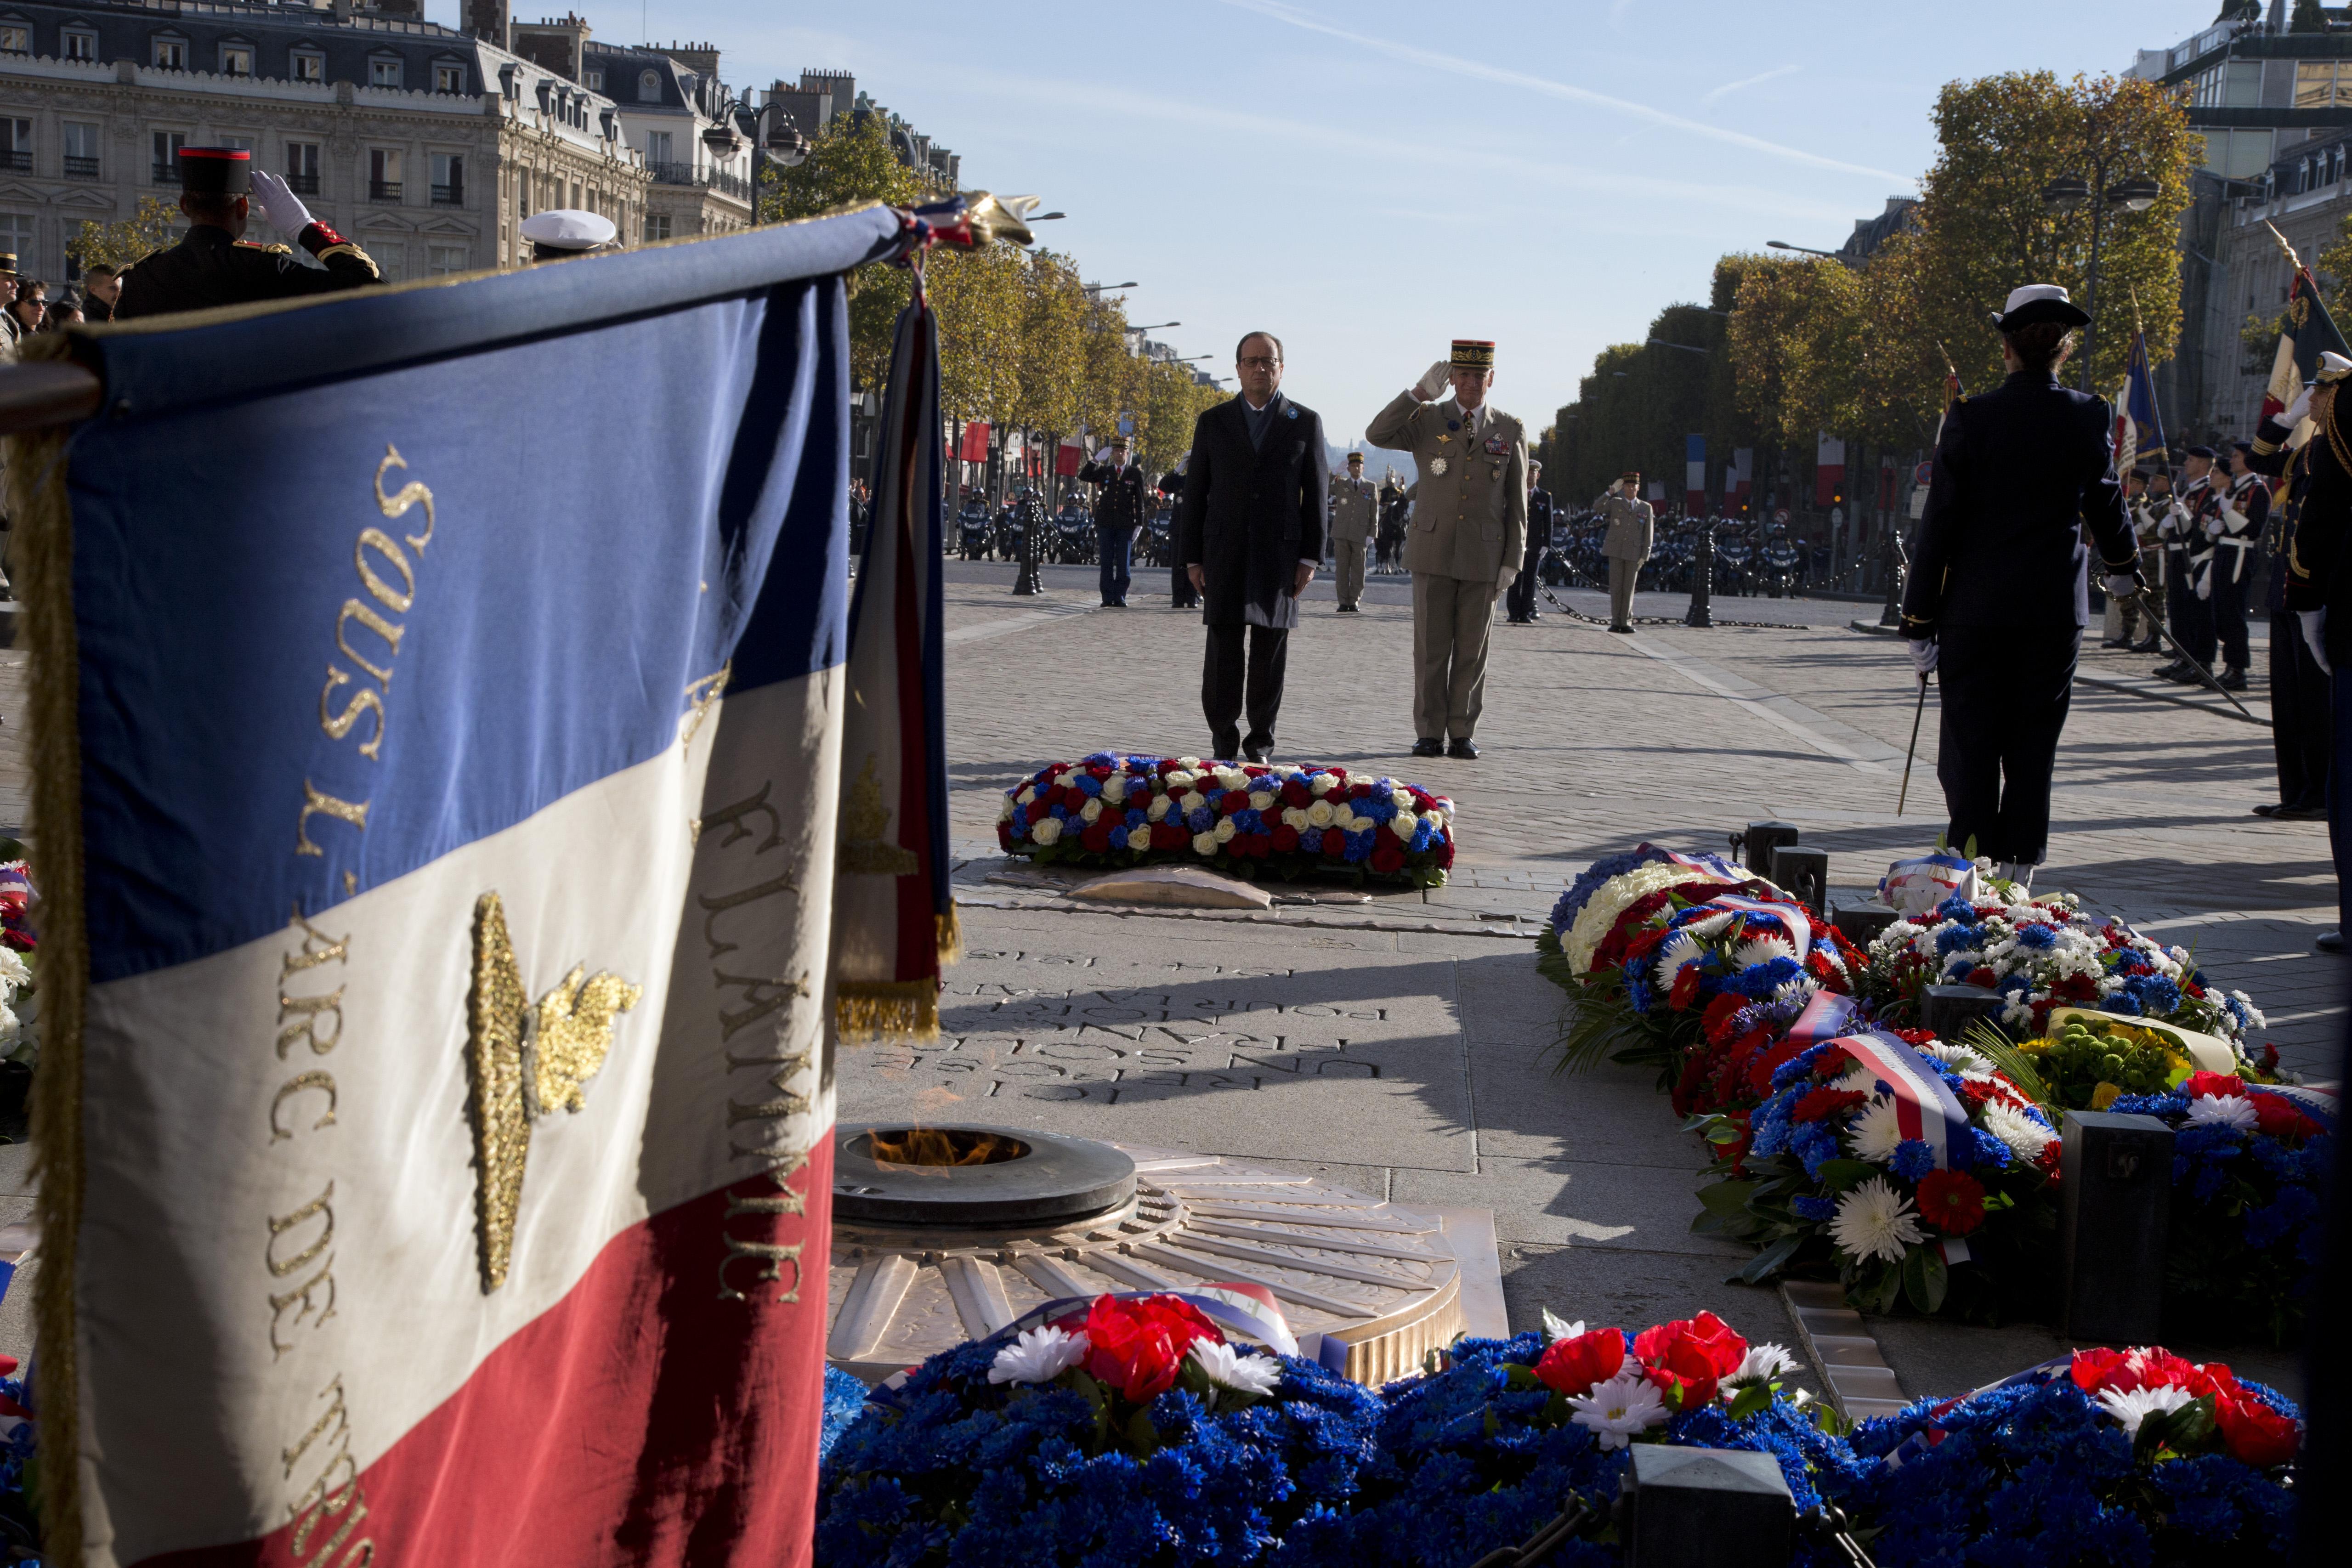 Europe remembers Armistice Day with ceremonies - The Blade